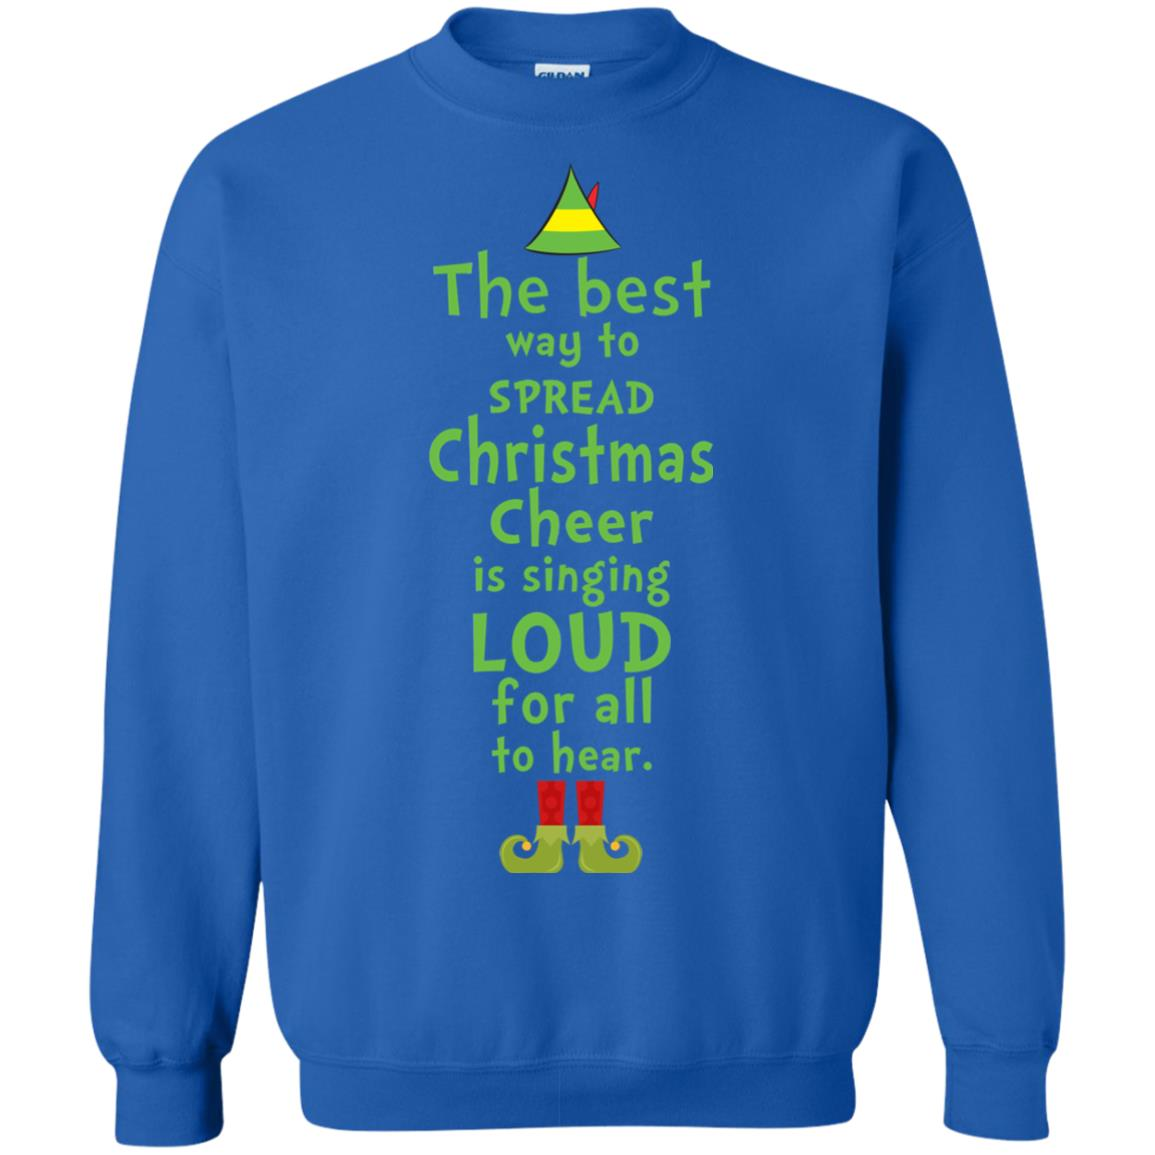 image 2465 - The best way to spread Christmas cheer is singing loud for all to hear Sweater, Shirt